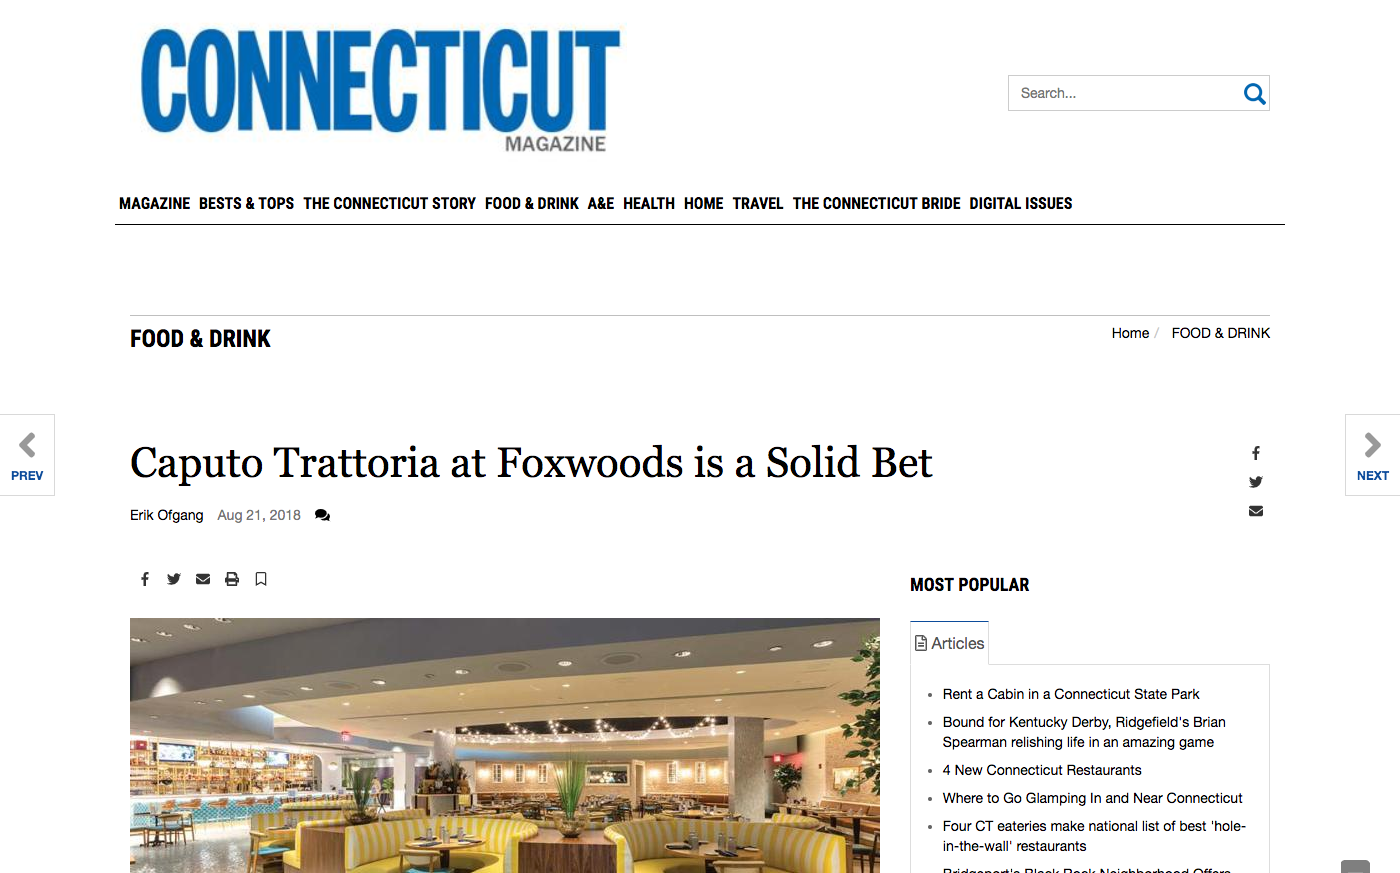 Caputo Trattoria at Foxwoods is a Solid Bet